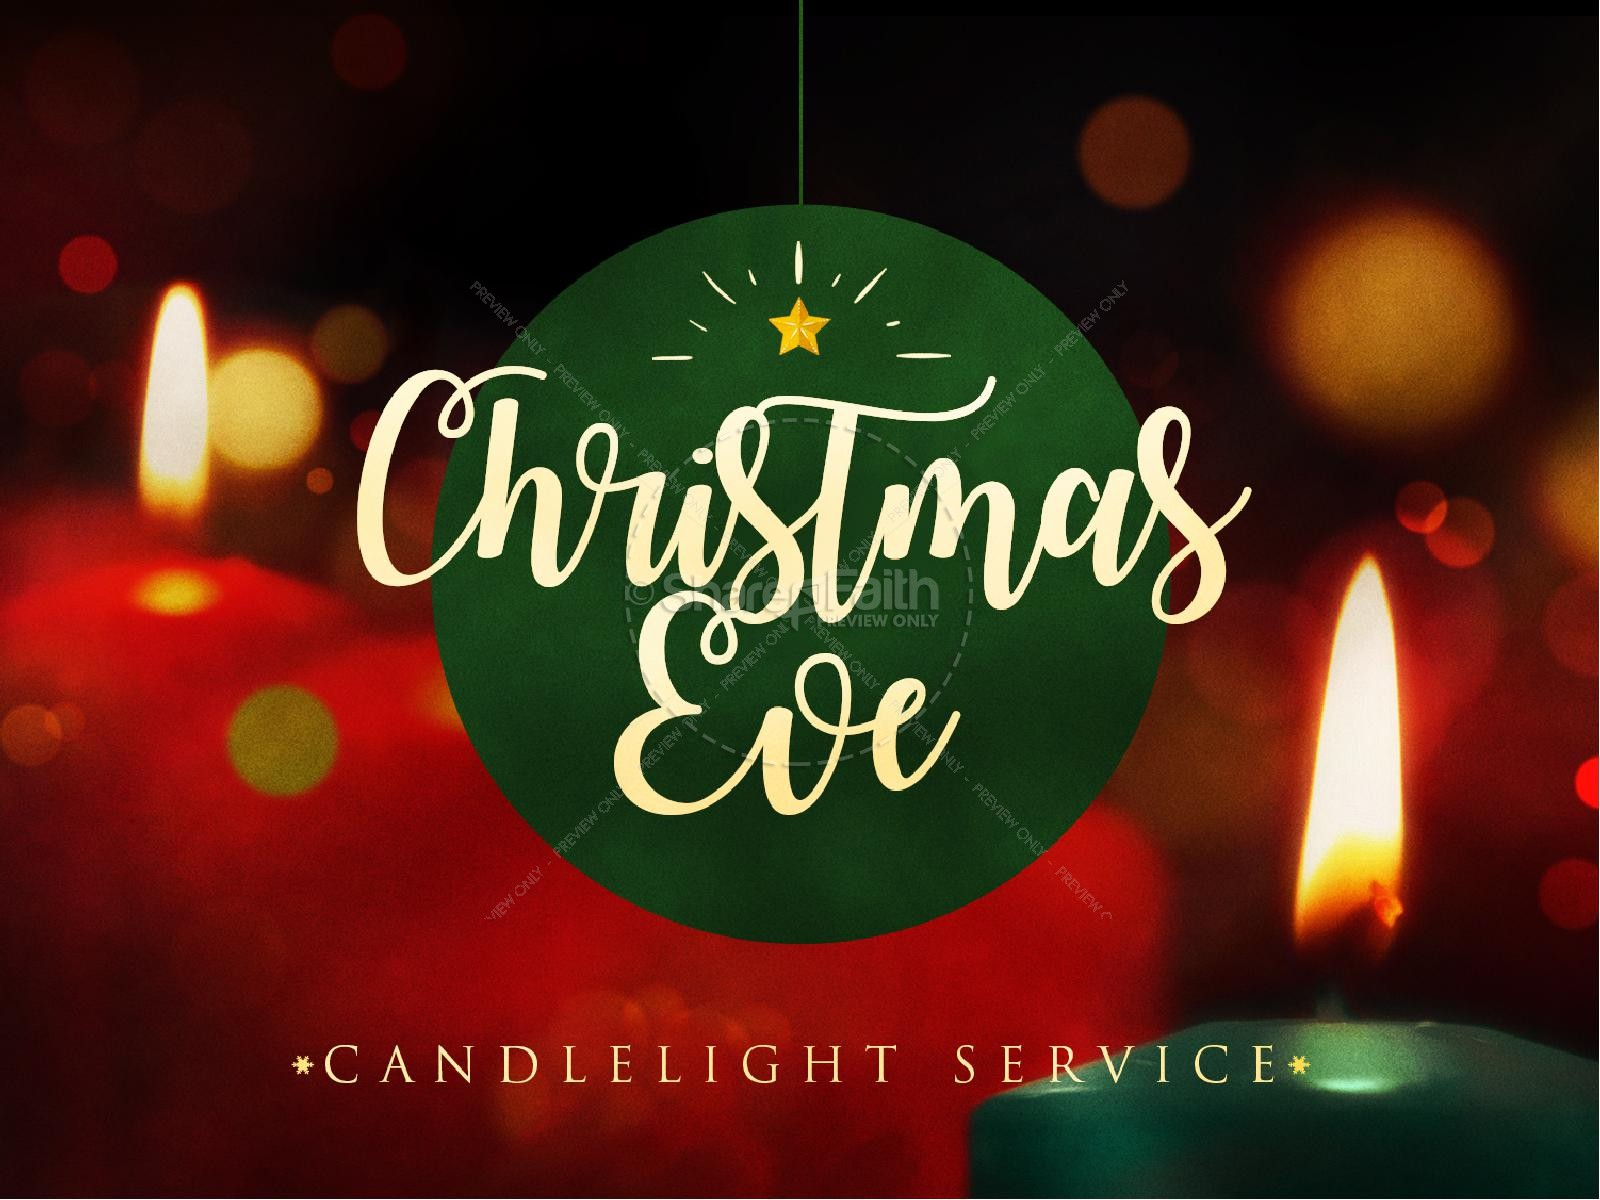 Image result for christmas eve candlelight service images